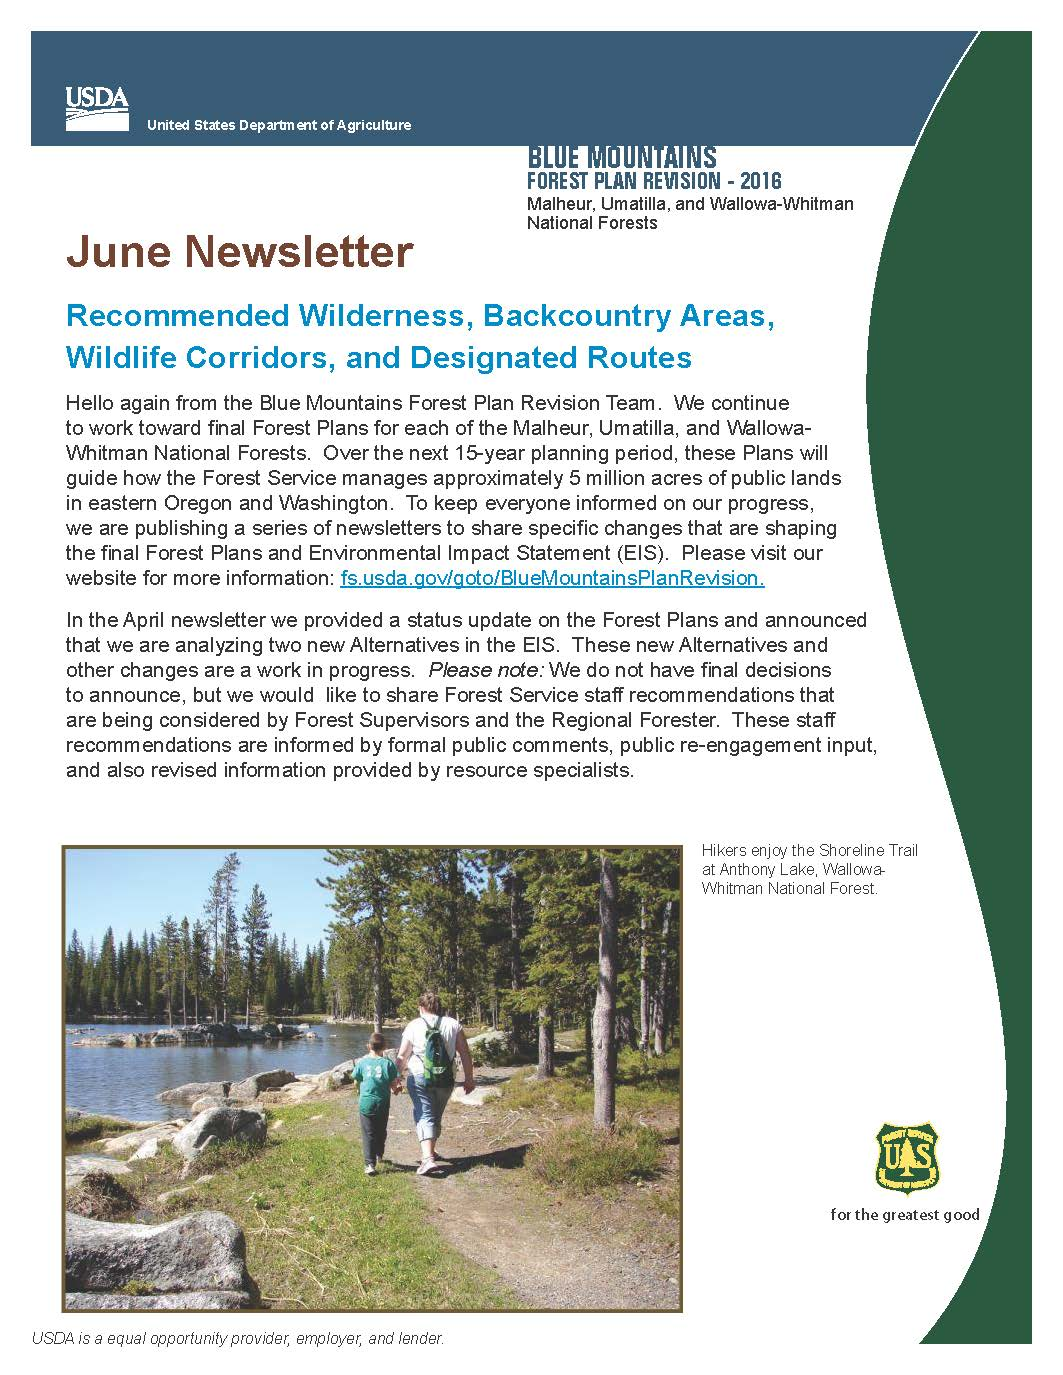 June 2016 Newsletter Blue Mountains Forest Plan Revision